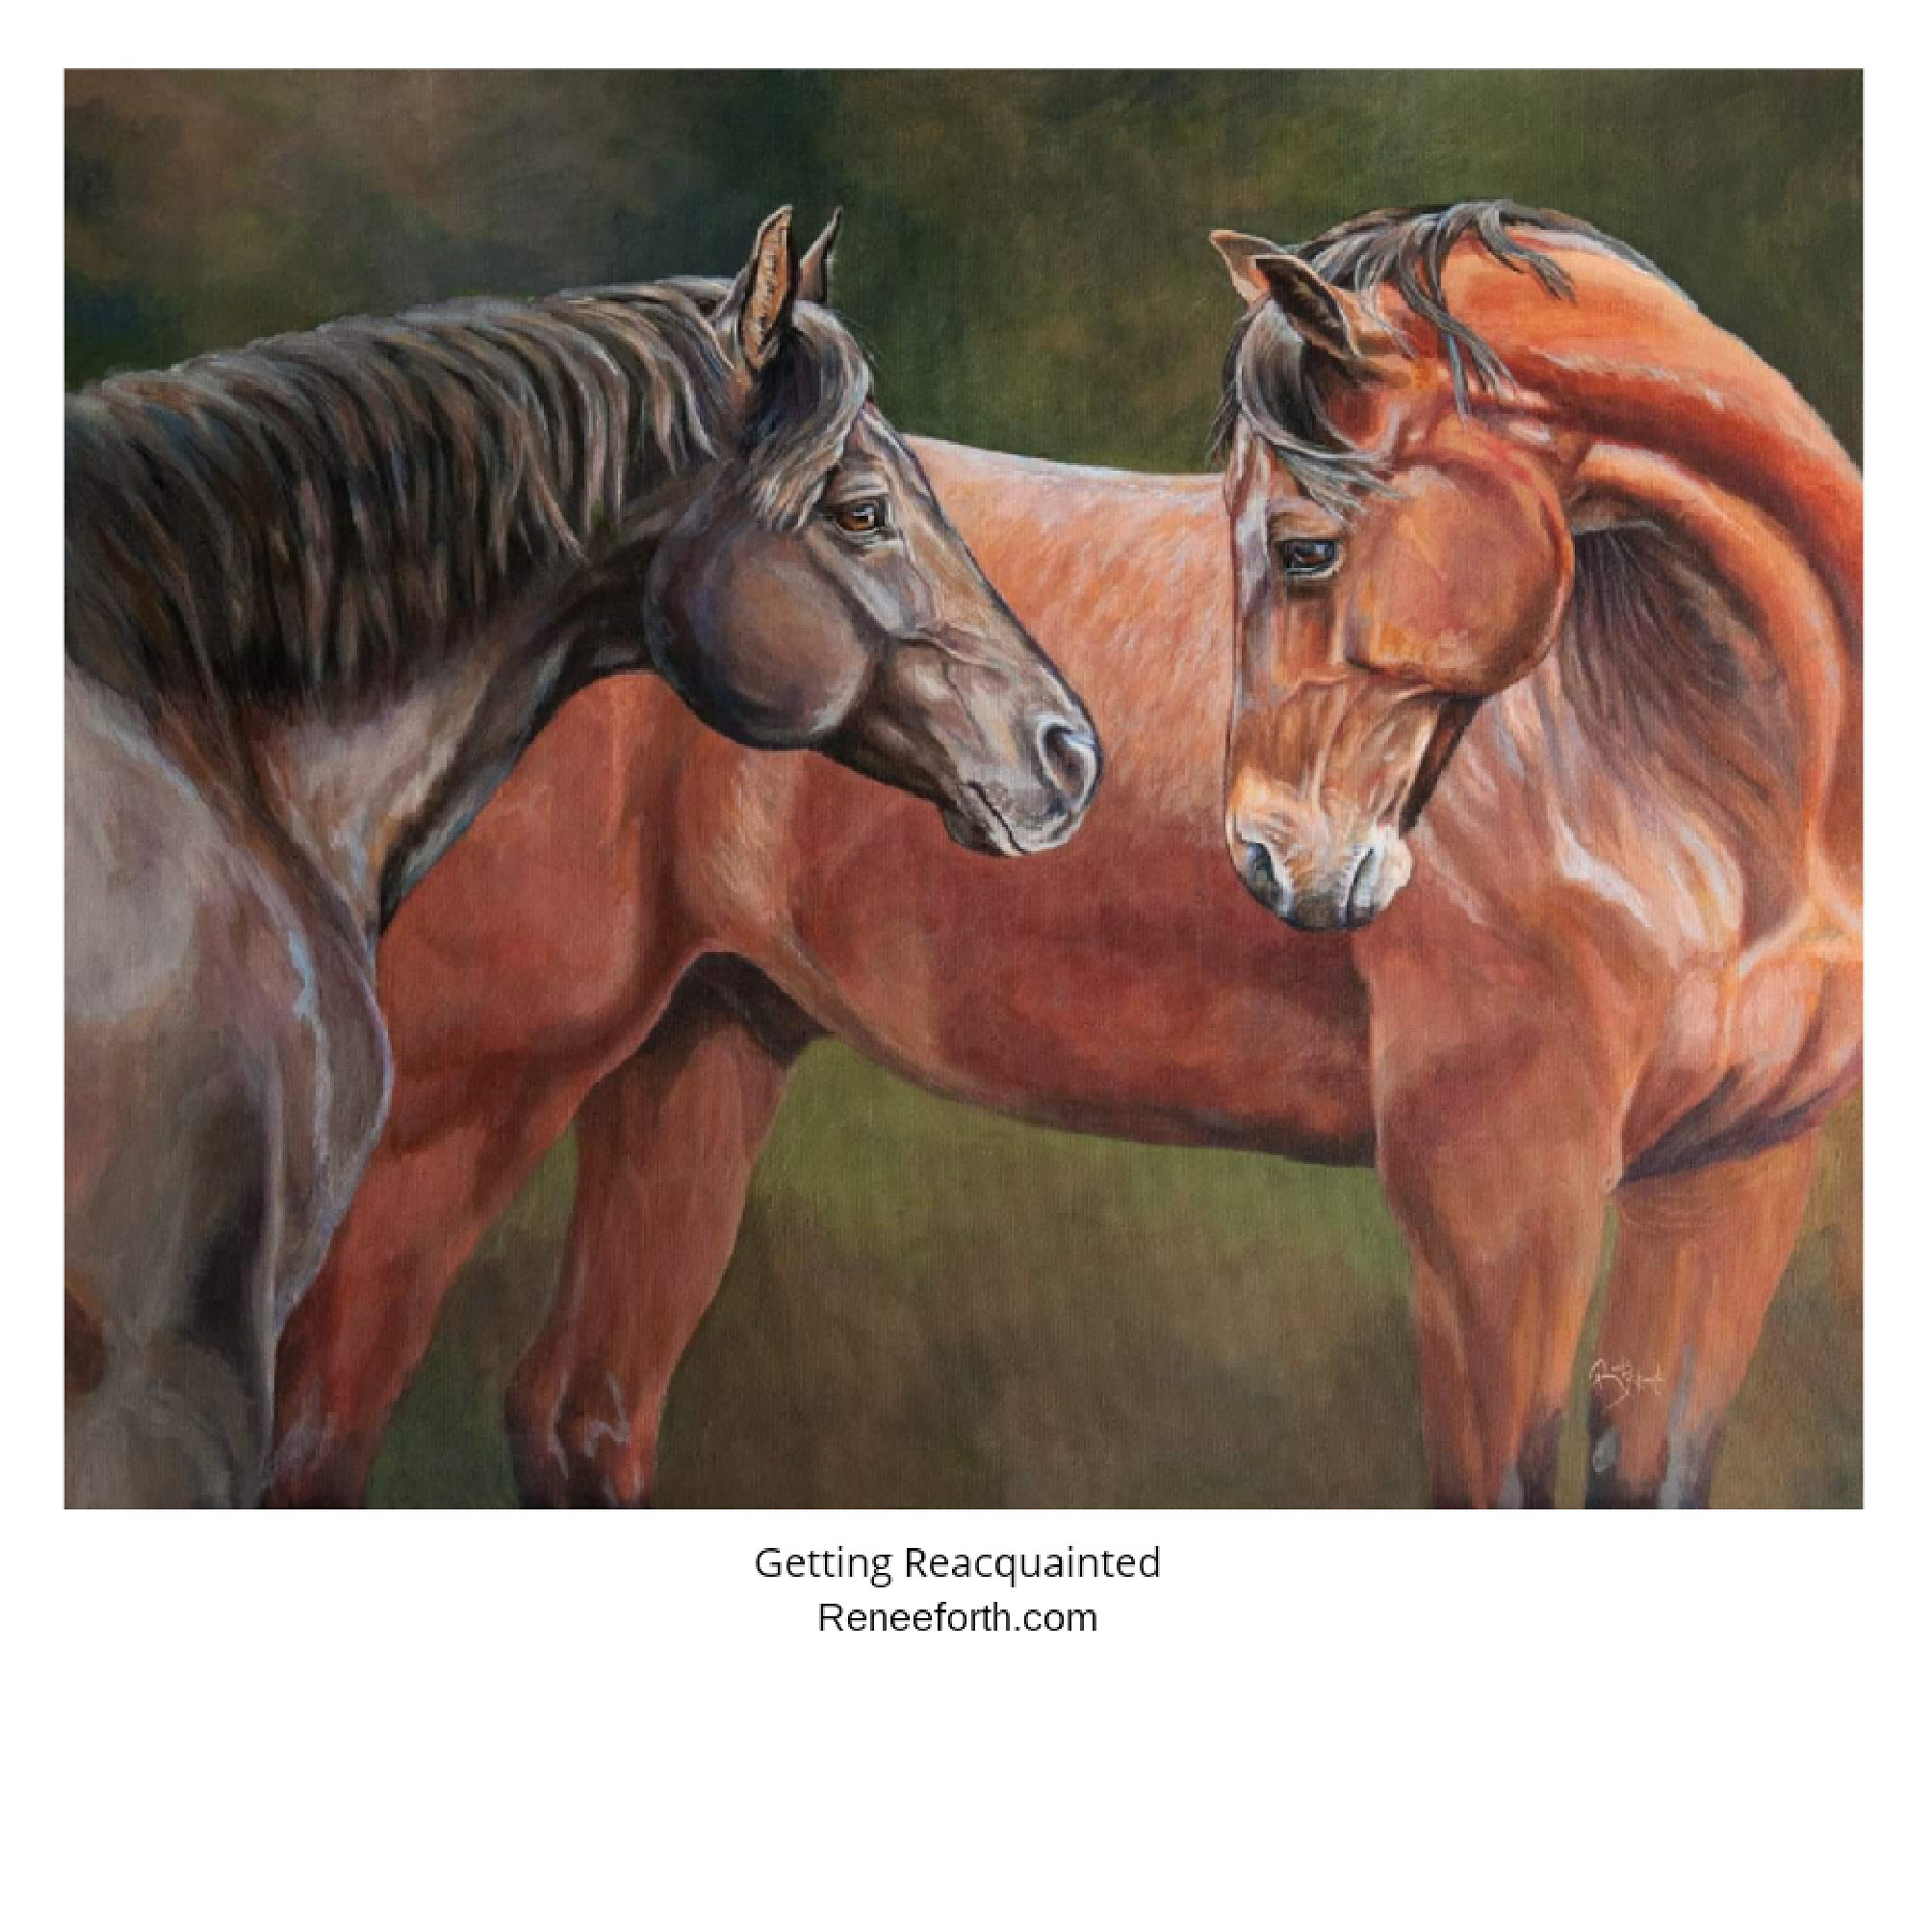 Getting Reacquainted, acrylic on canvas, 16x20. Copyright Renee Forth-Fukumoto.  Two horses greeting after a separation period, painted in a realistic style.